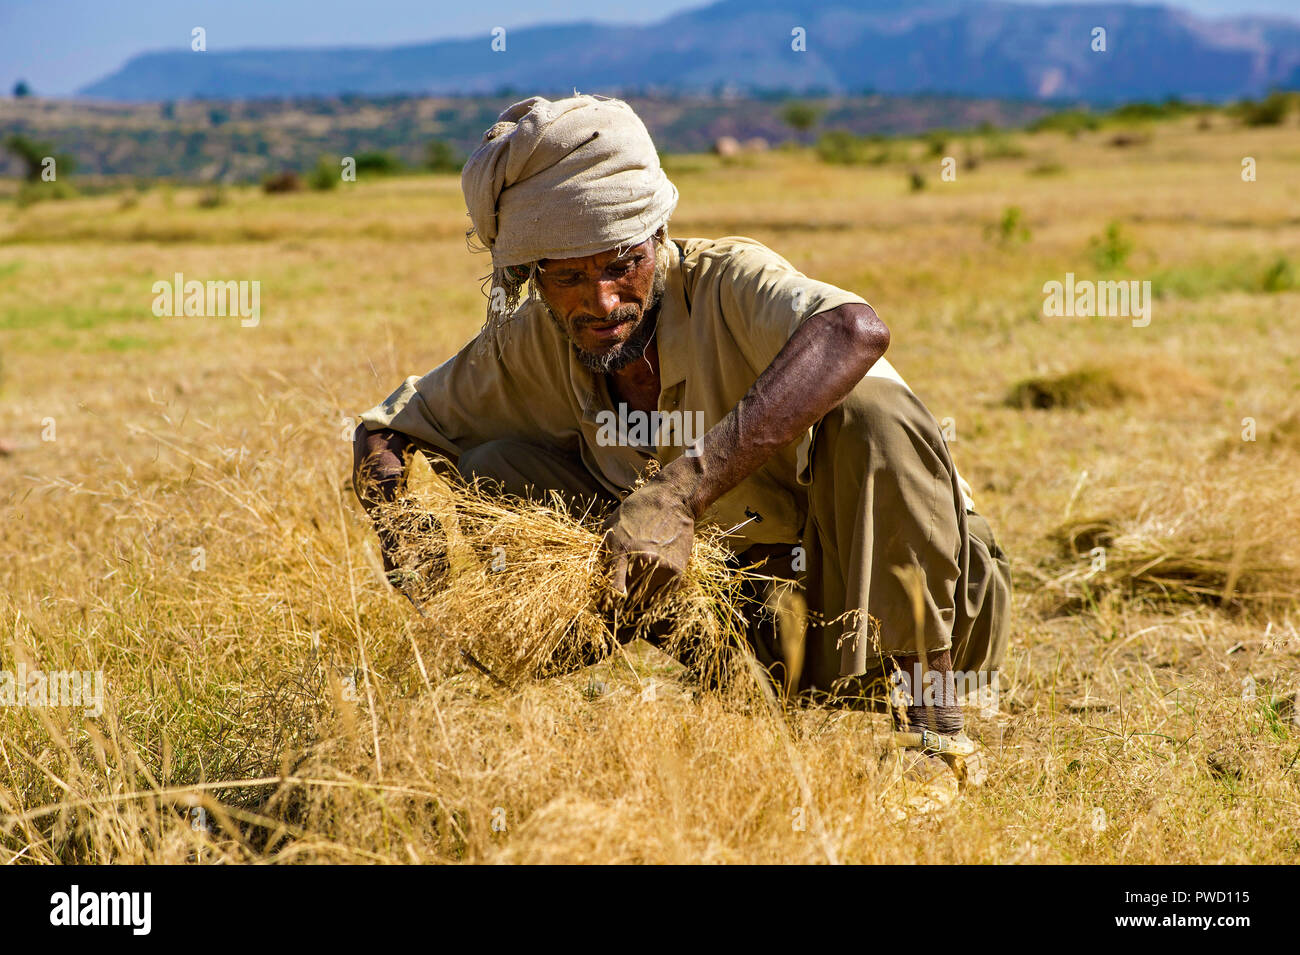 Farmers harvesting Teff (Eragrostis tef) with a sickle, Hawzien, Tigray, Ethiopia - Stock Image